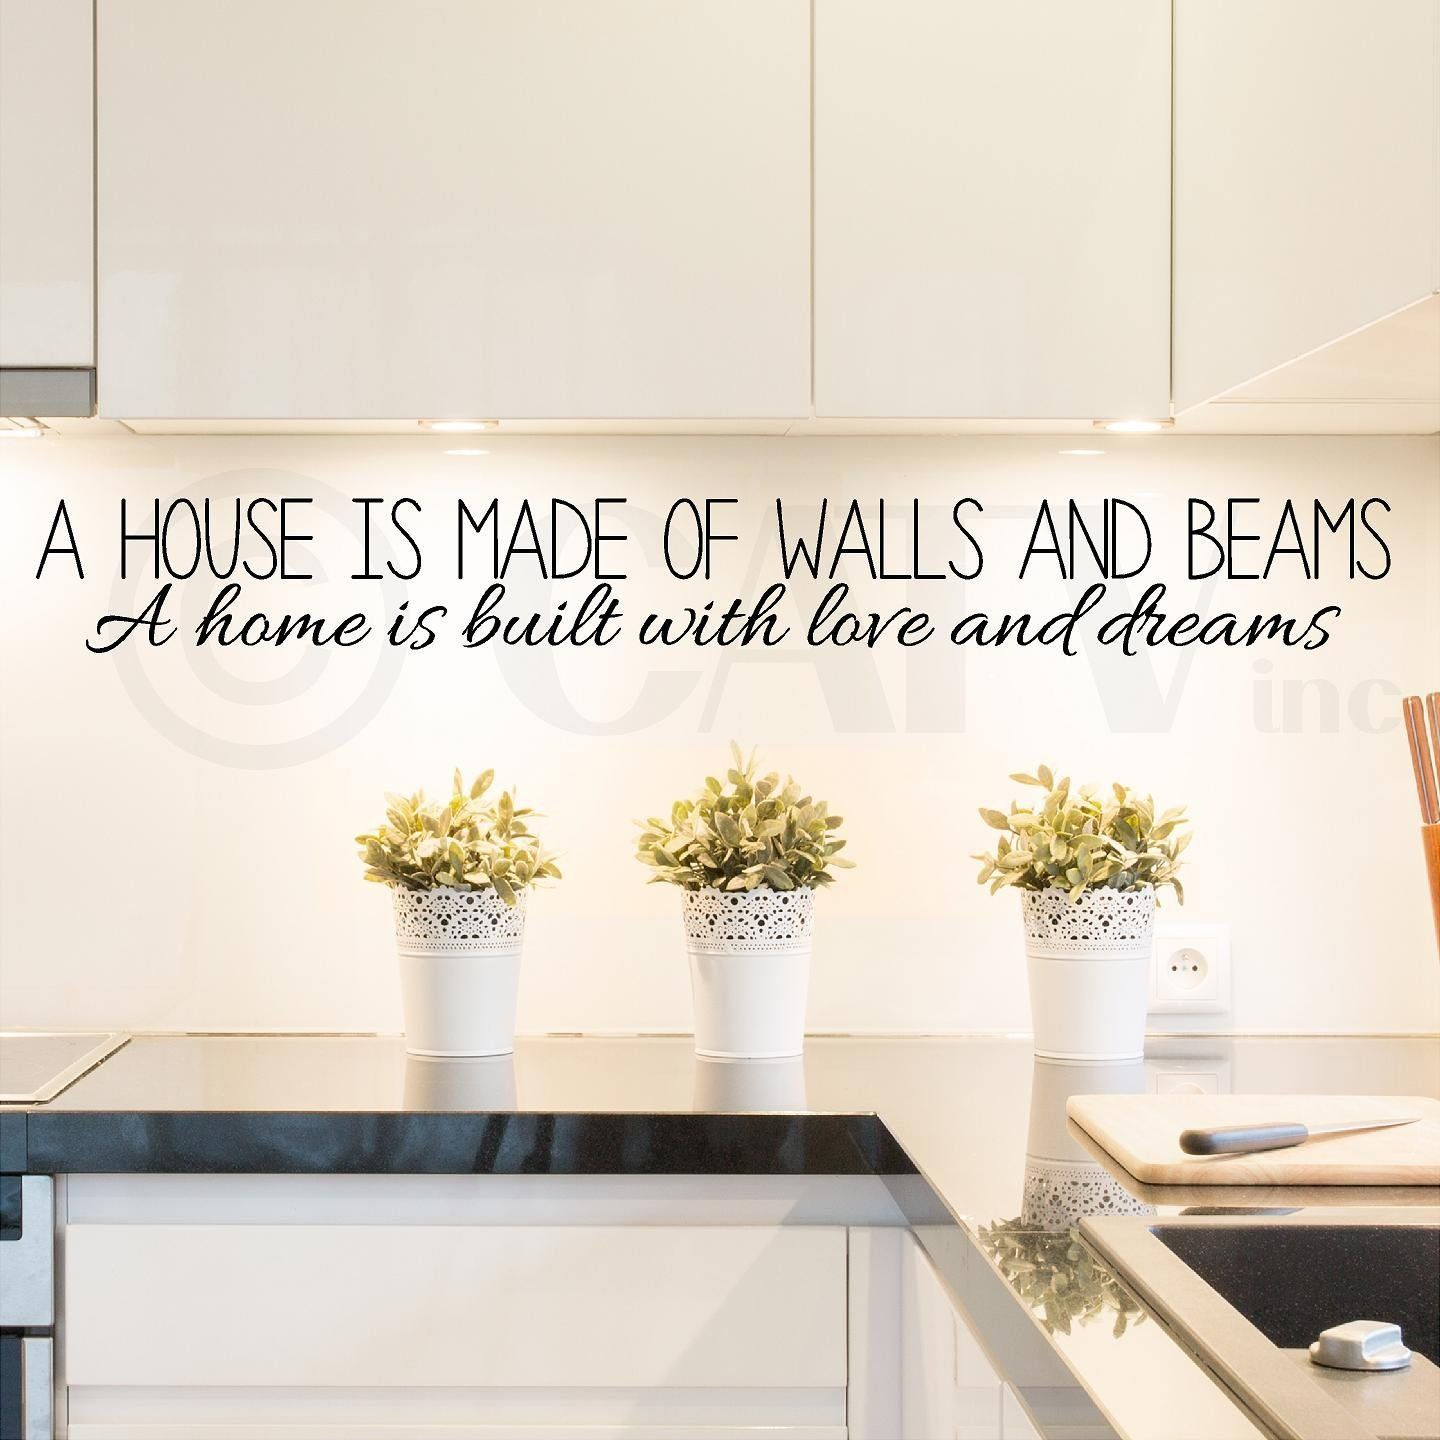 a house is made of walls and beams a home is built with love and